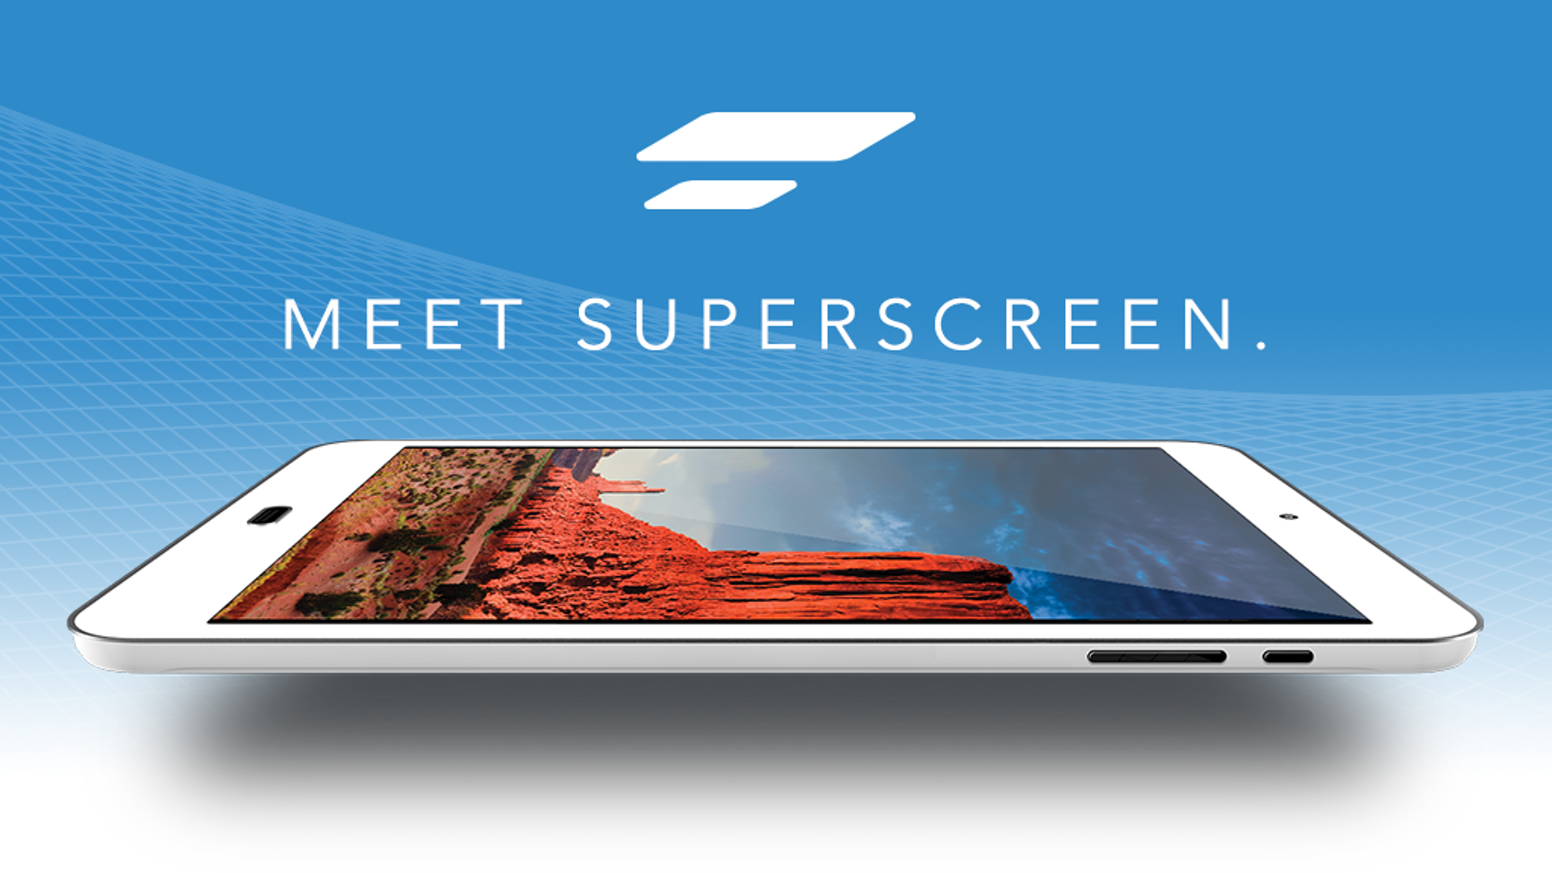 superscreen supercharge your phone a hd display by superscreen gives you the benefits of a tablet the power and convenience of your phone